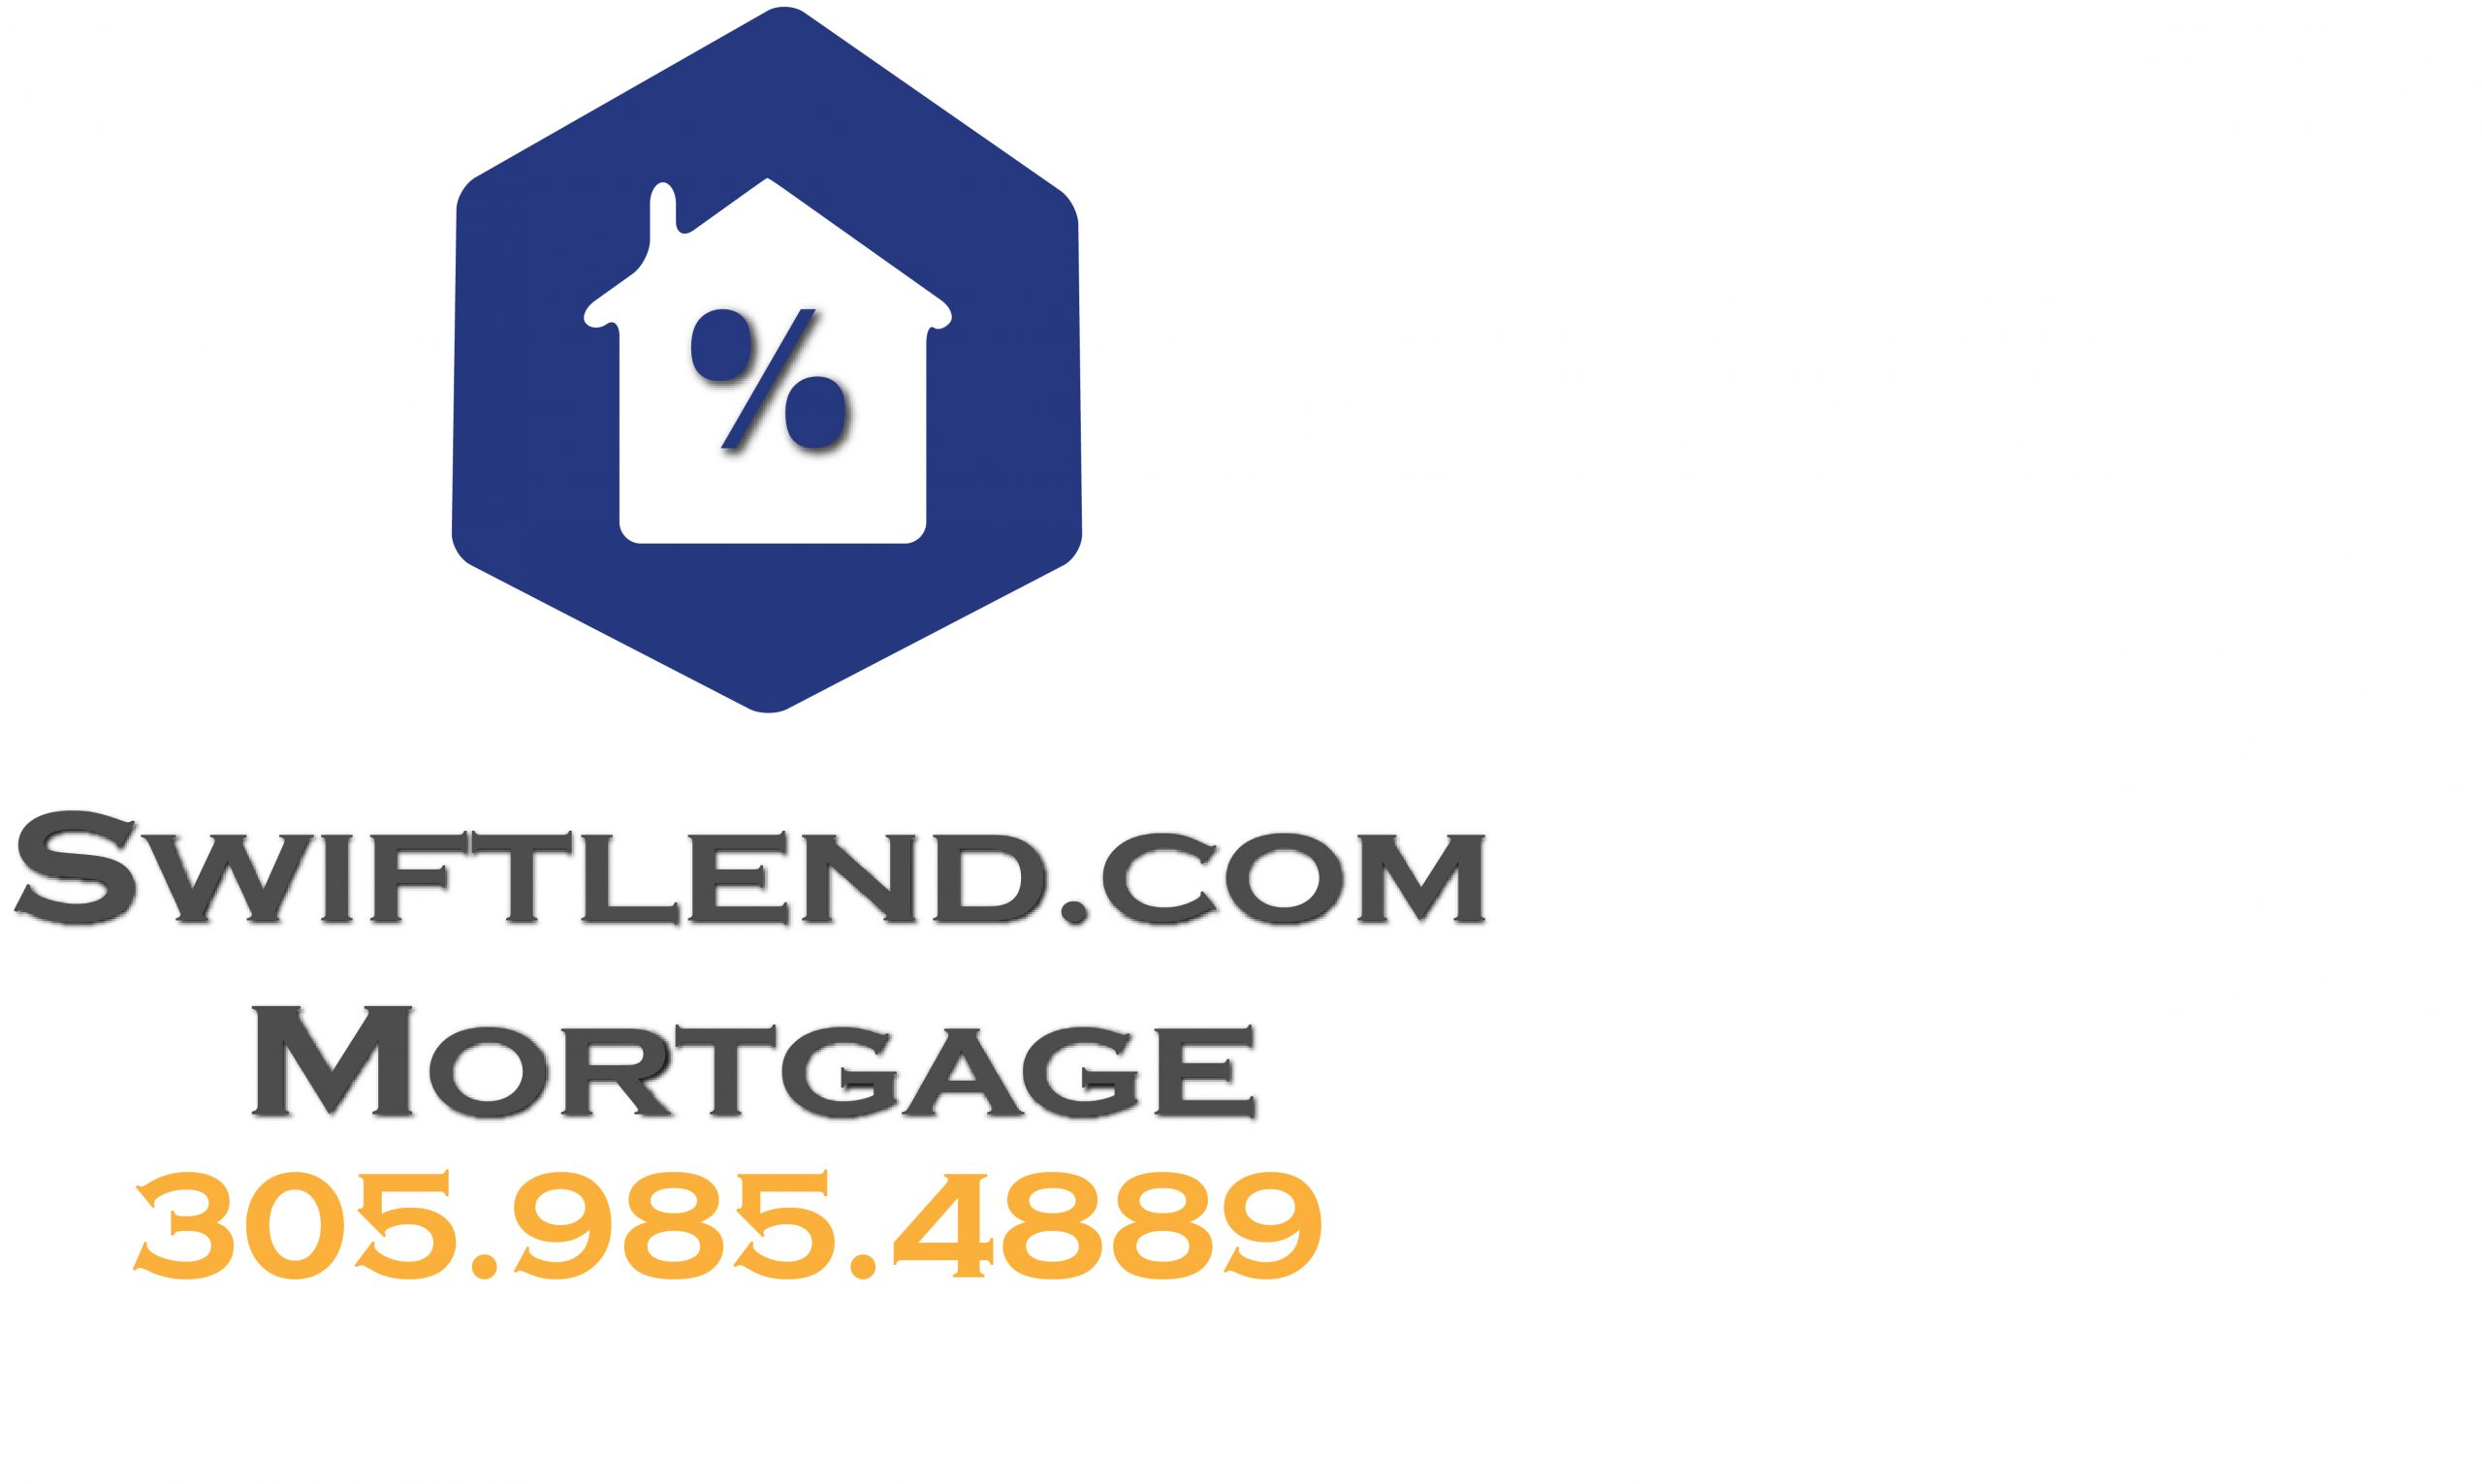 Join Swiftlend.com Mortgage -Join the best paid Loan Officers